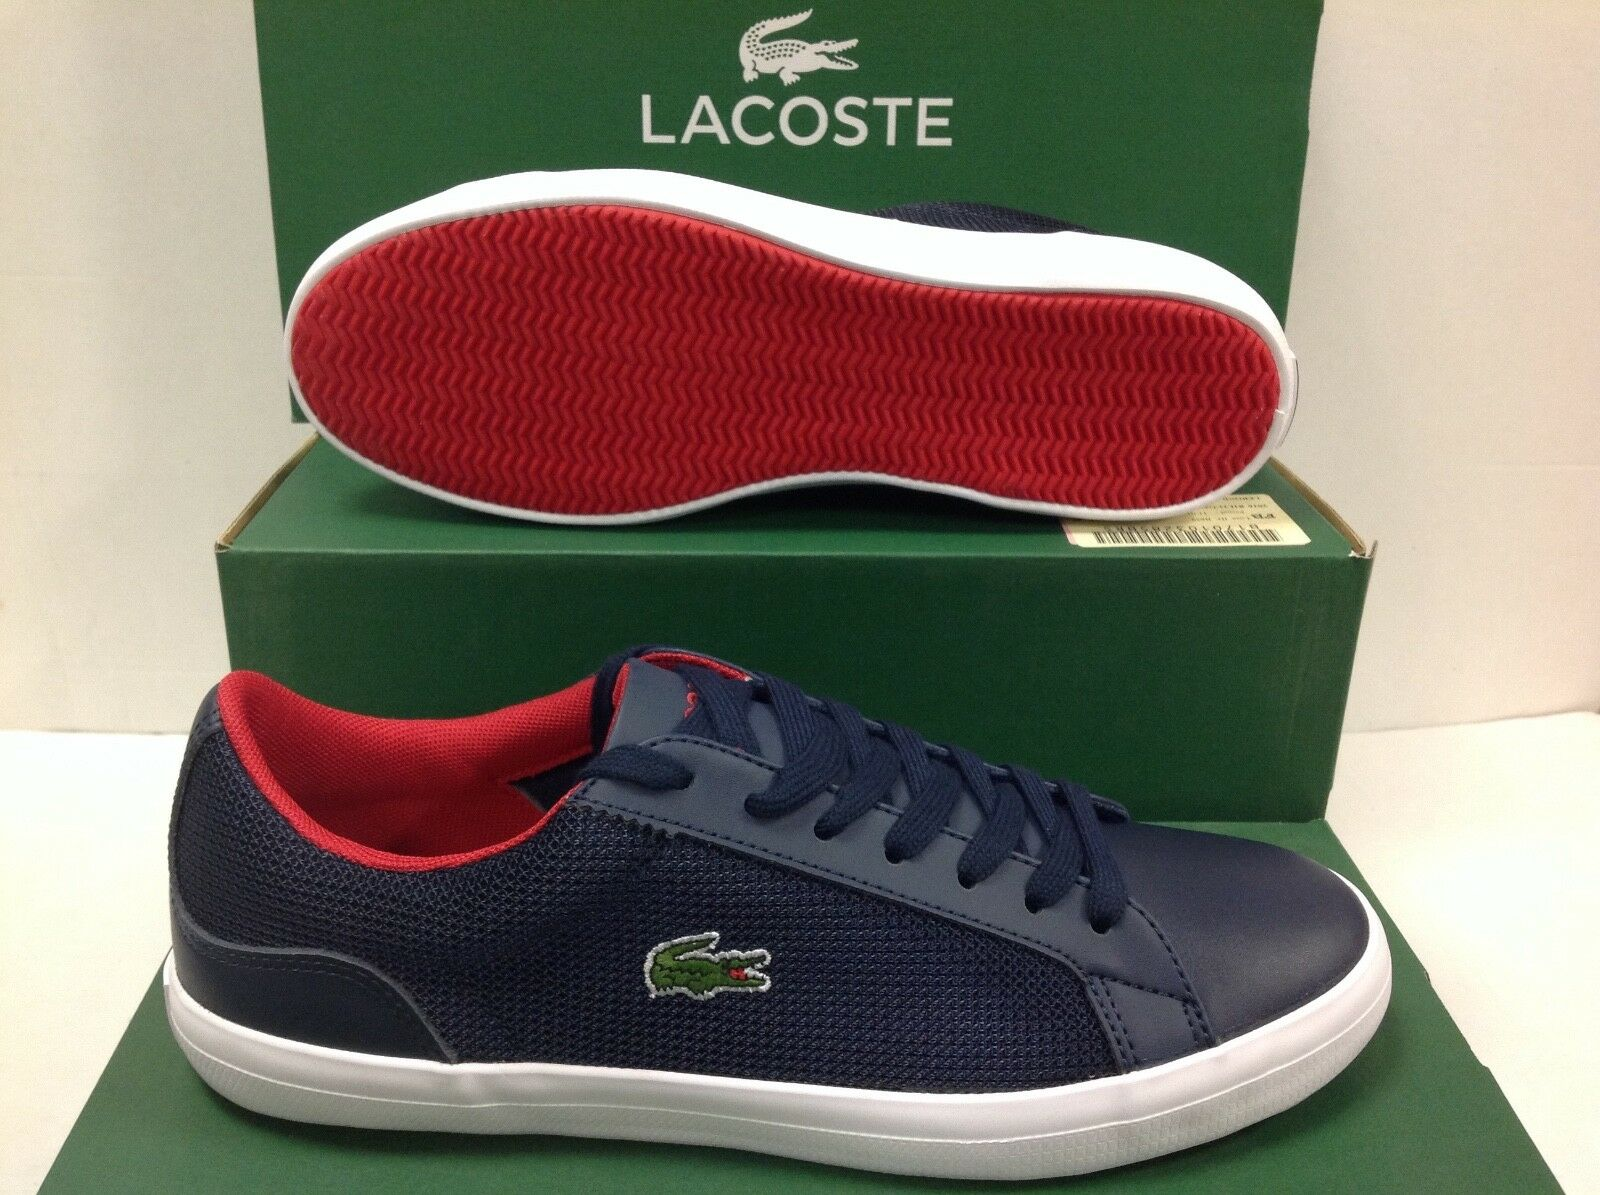 Lacoste LEROND 116 Men's Sneakers Trainers, Size     USA 7.5